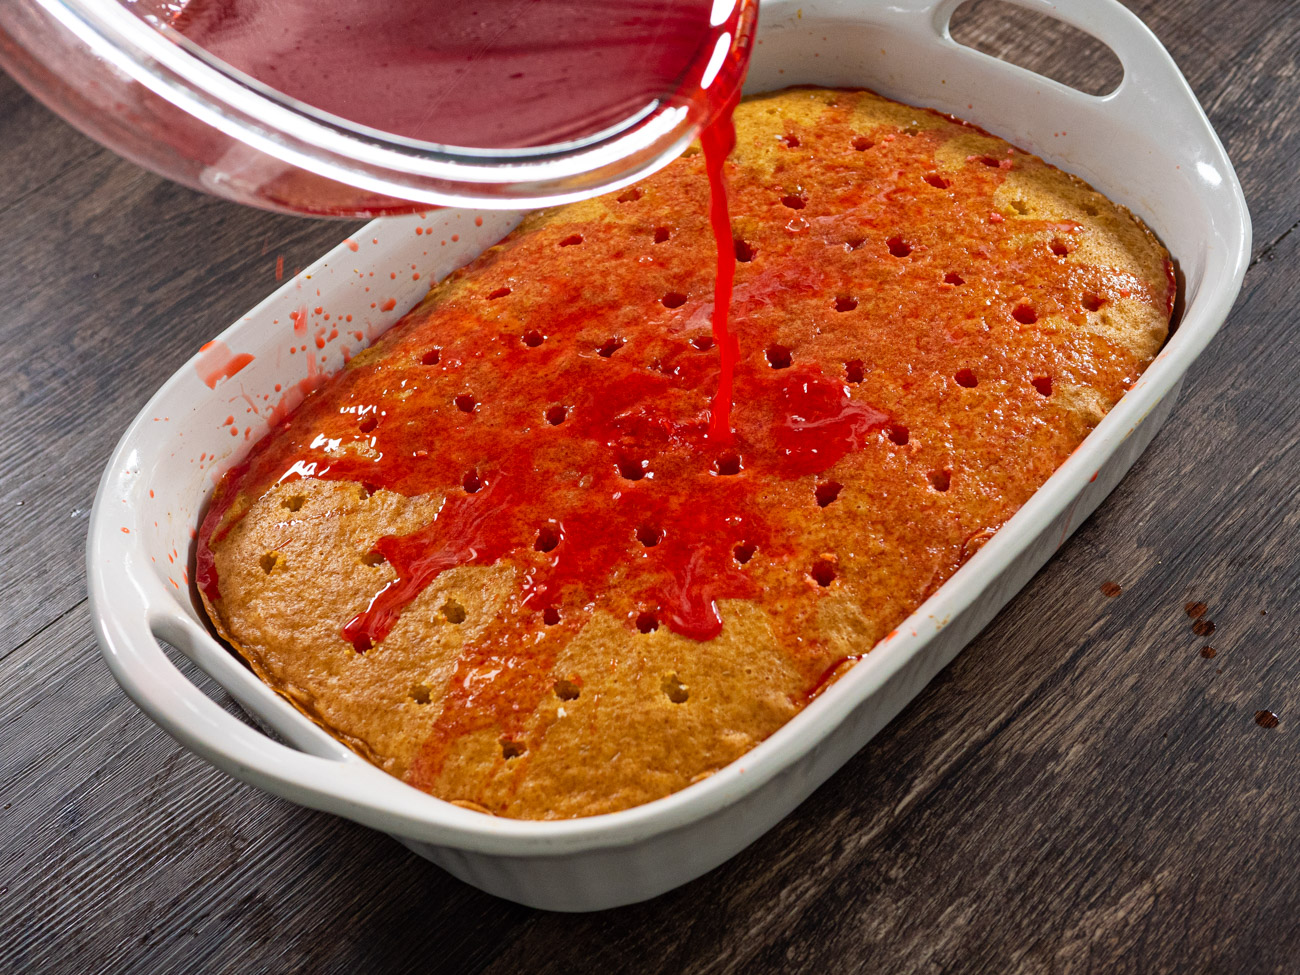 Combine raspberry gelatin and hot water until dissolved. Pour evenly over the cake, filling in the holes.